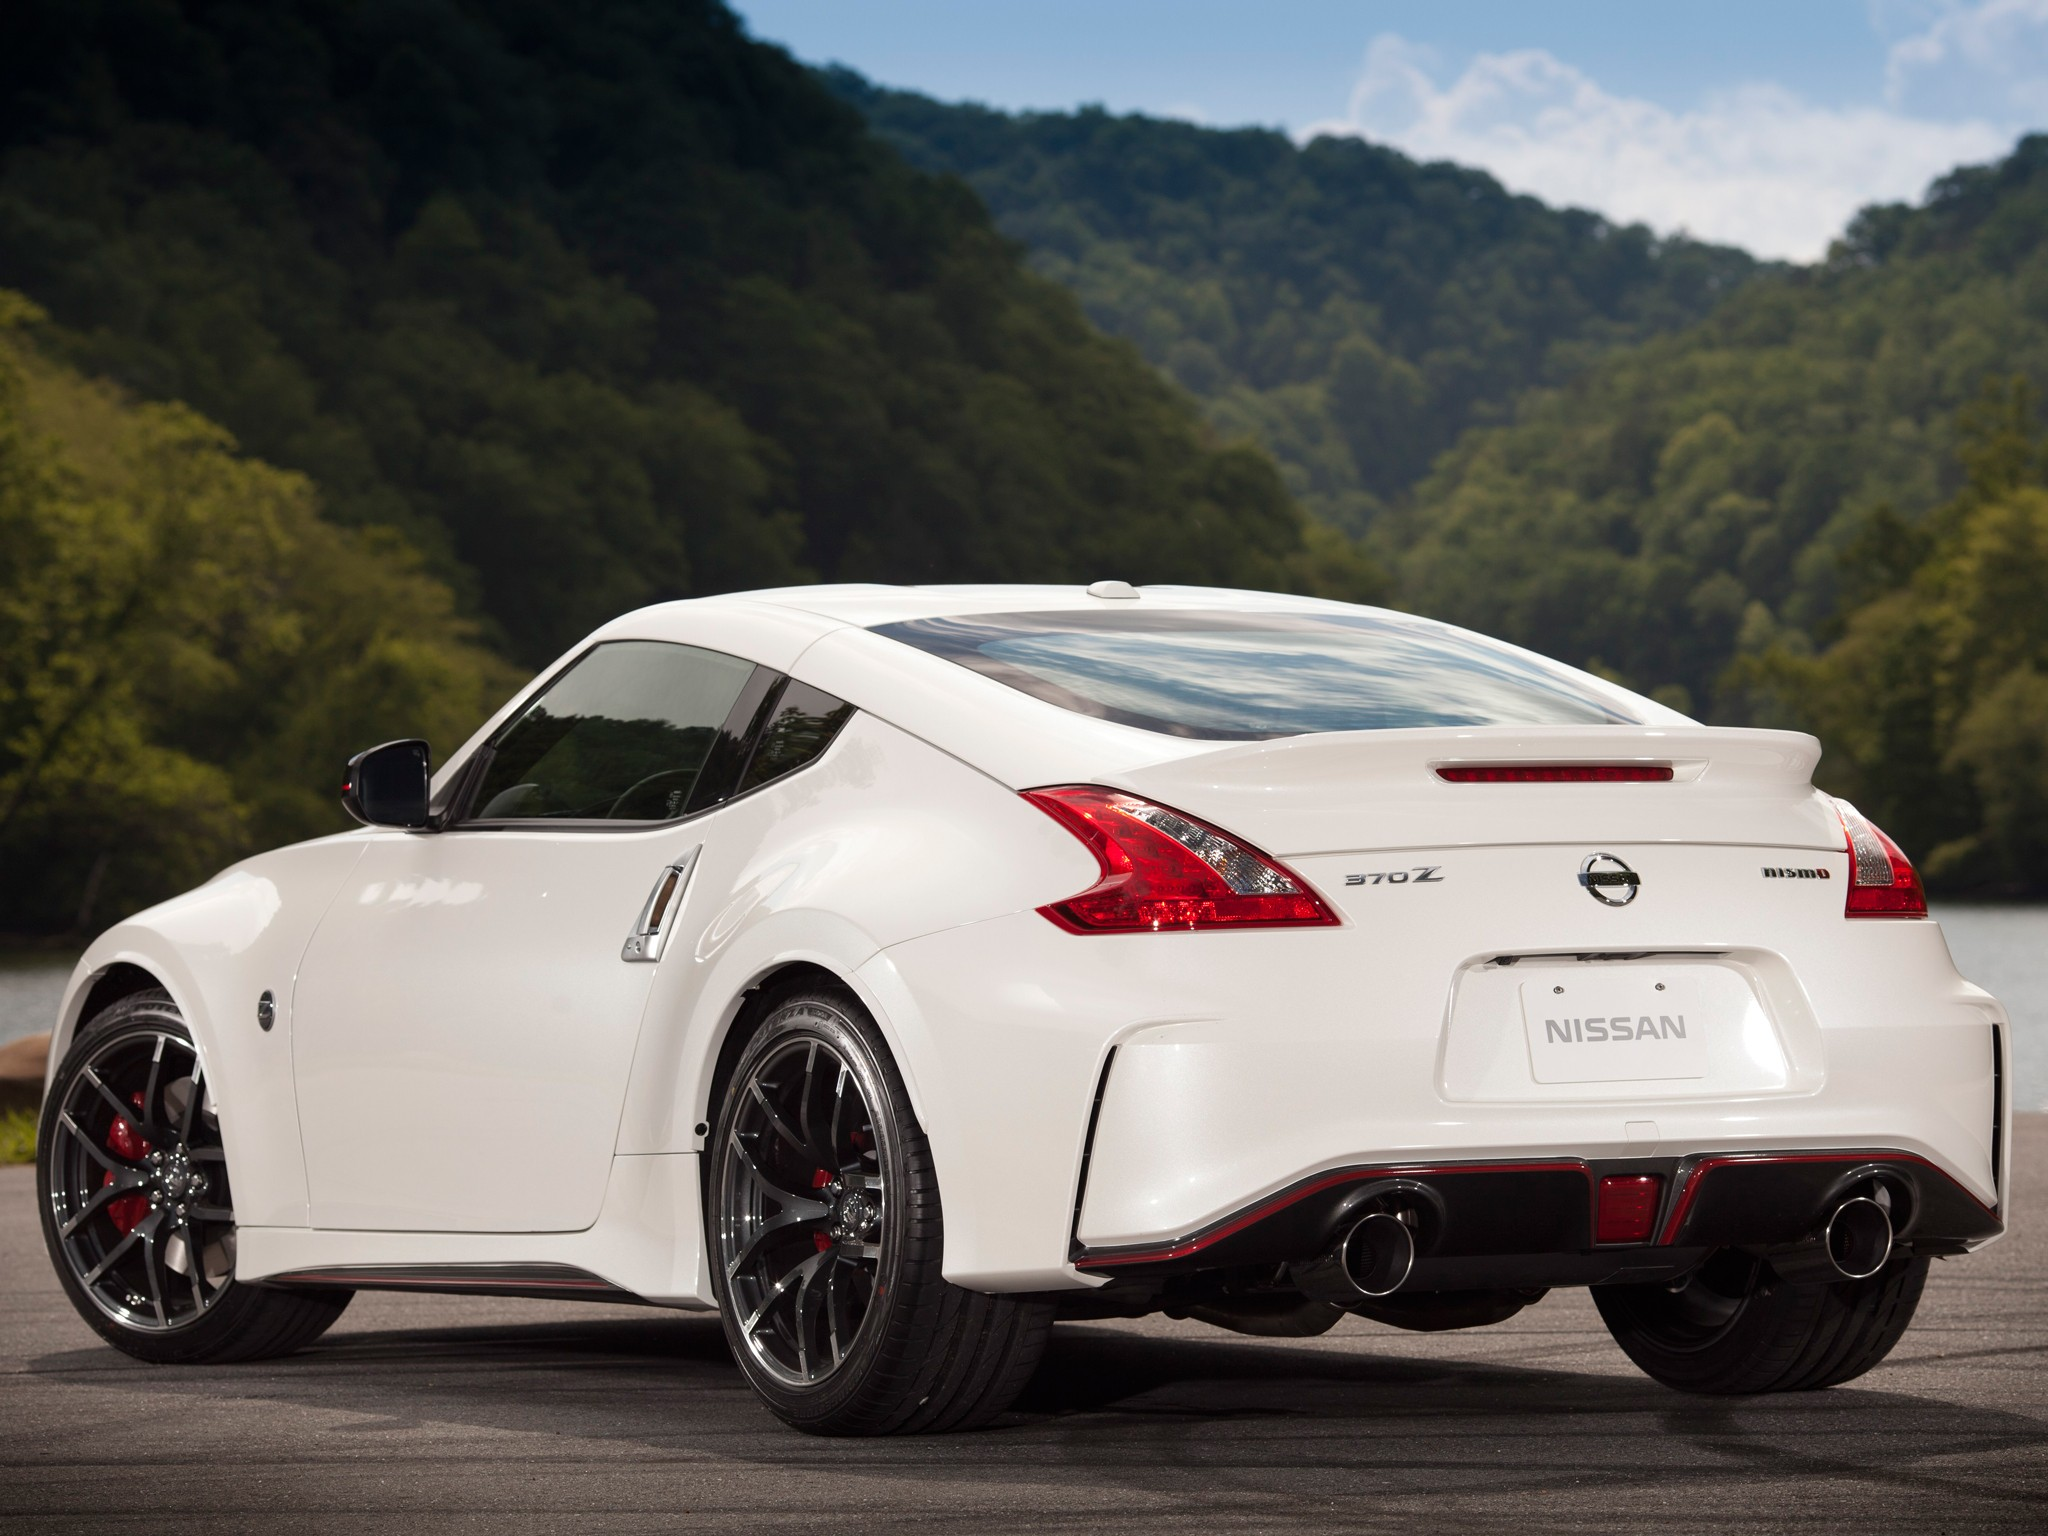 nissan 370z nismo specs 2014 2015 2016 2017 2018 autoevolution. Black Bedroom Furniture Sets. Home Design Ideas